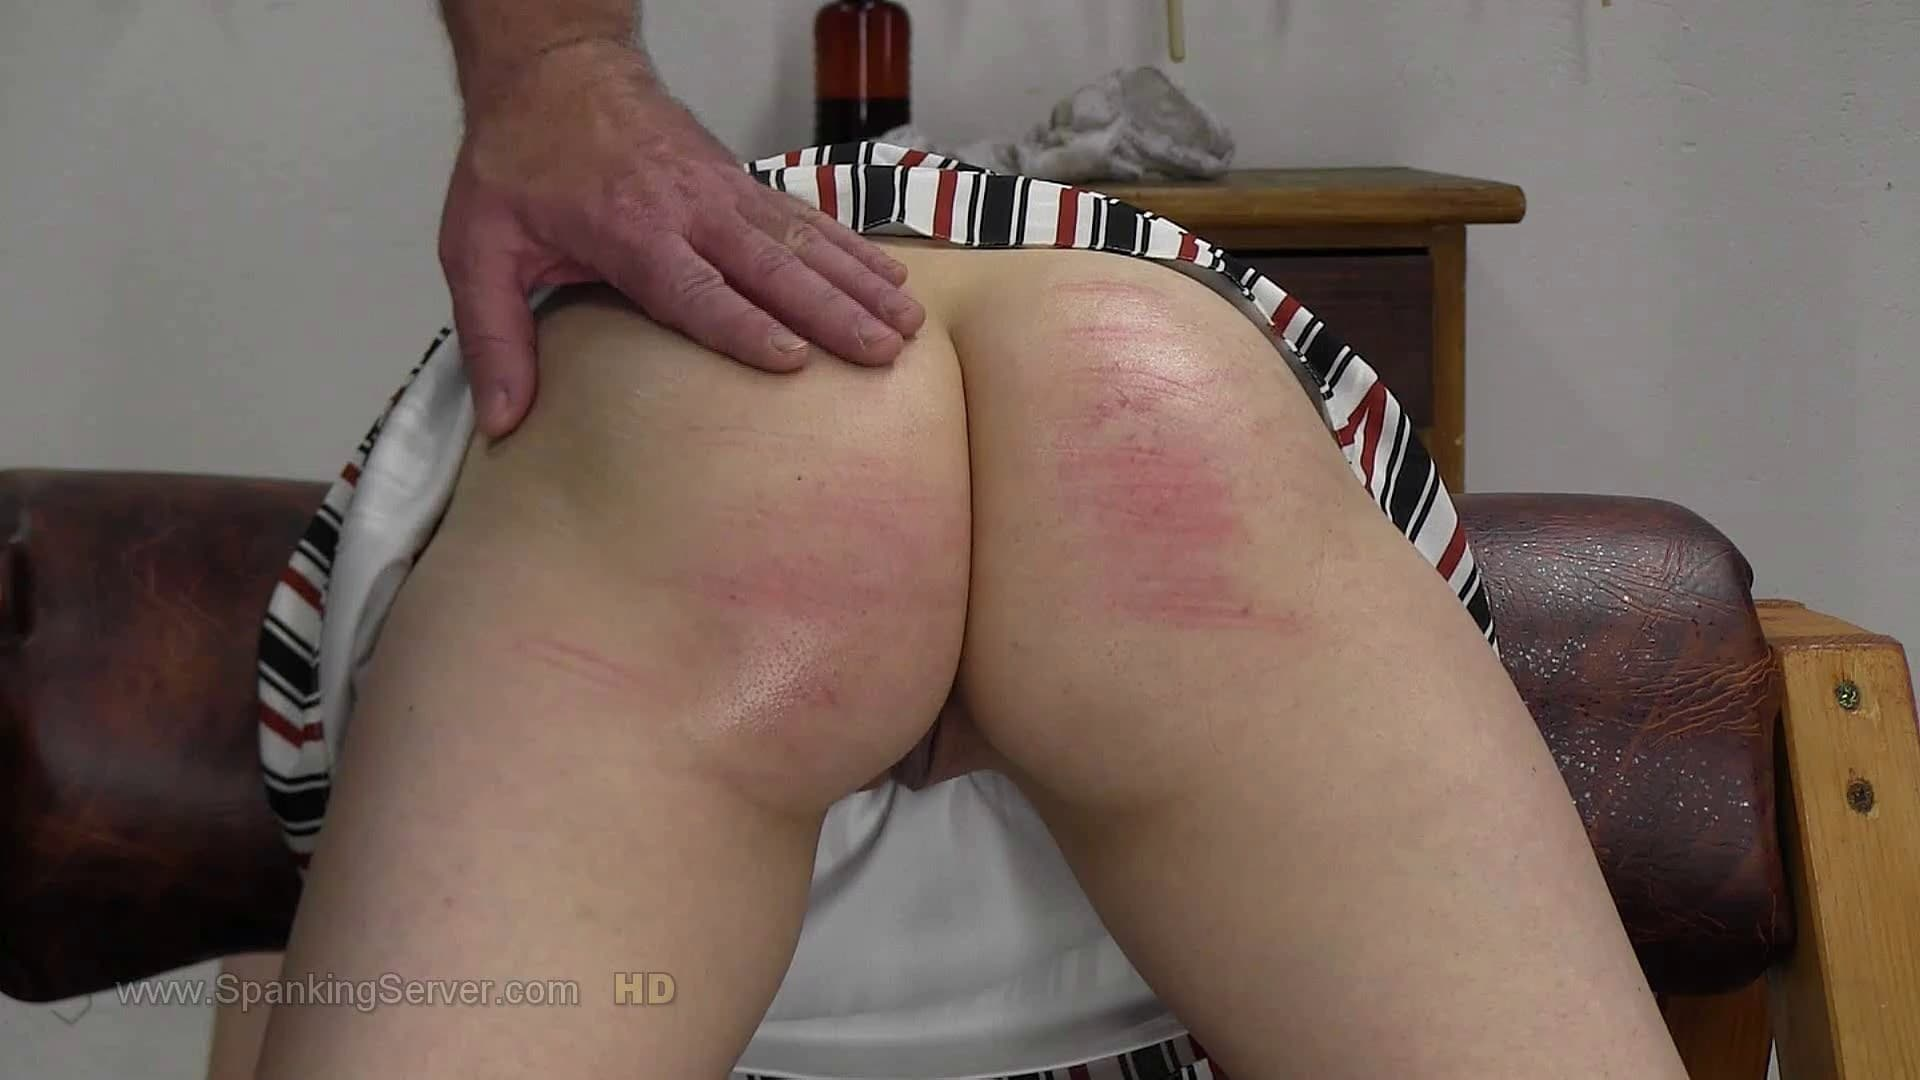 Spanking Server – MP4/Full HD – Rosali – 2021 – 06 Week